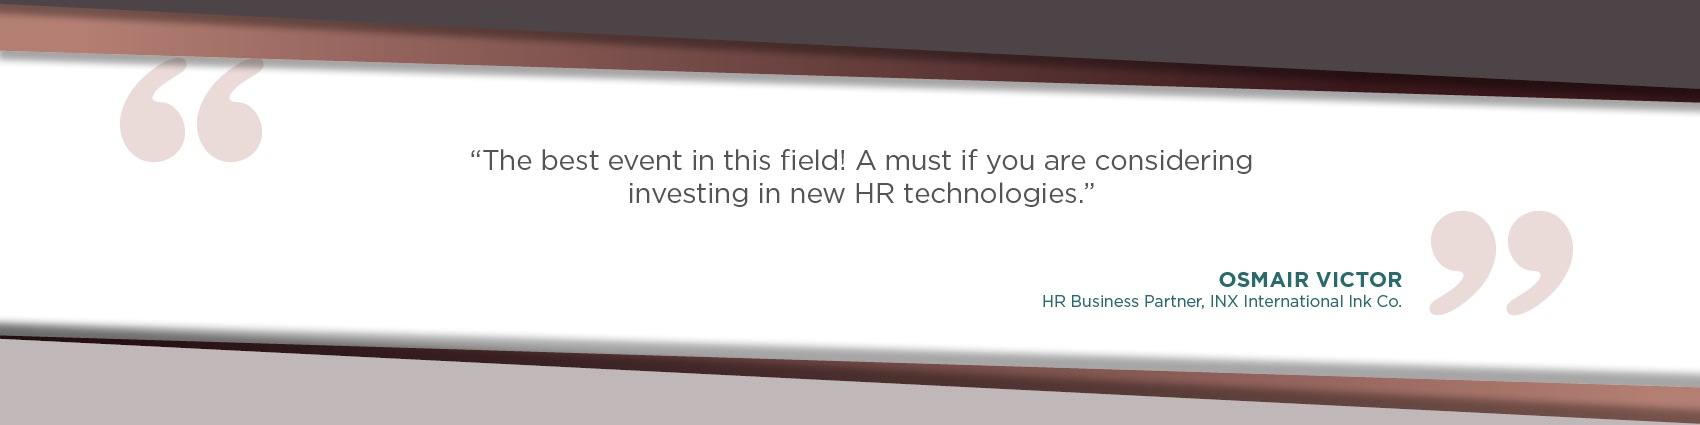 The best event in this field! A must if you are considering investing in new HR technologies.- Osmair Victor